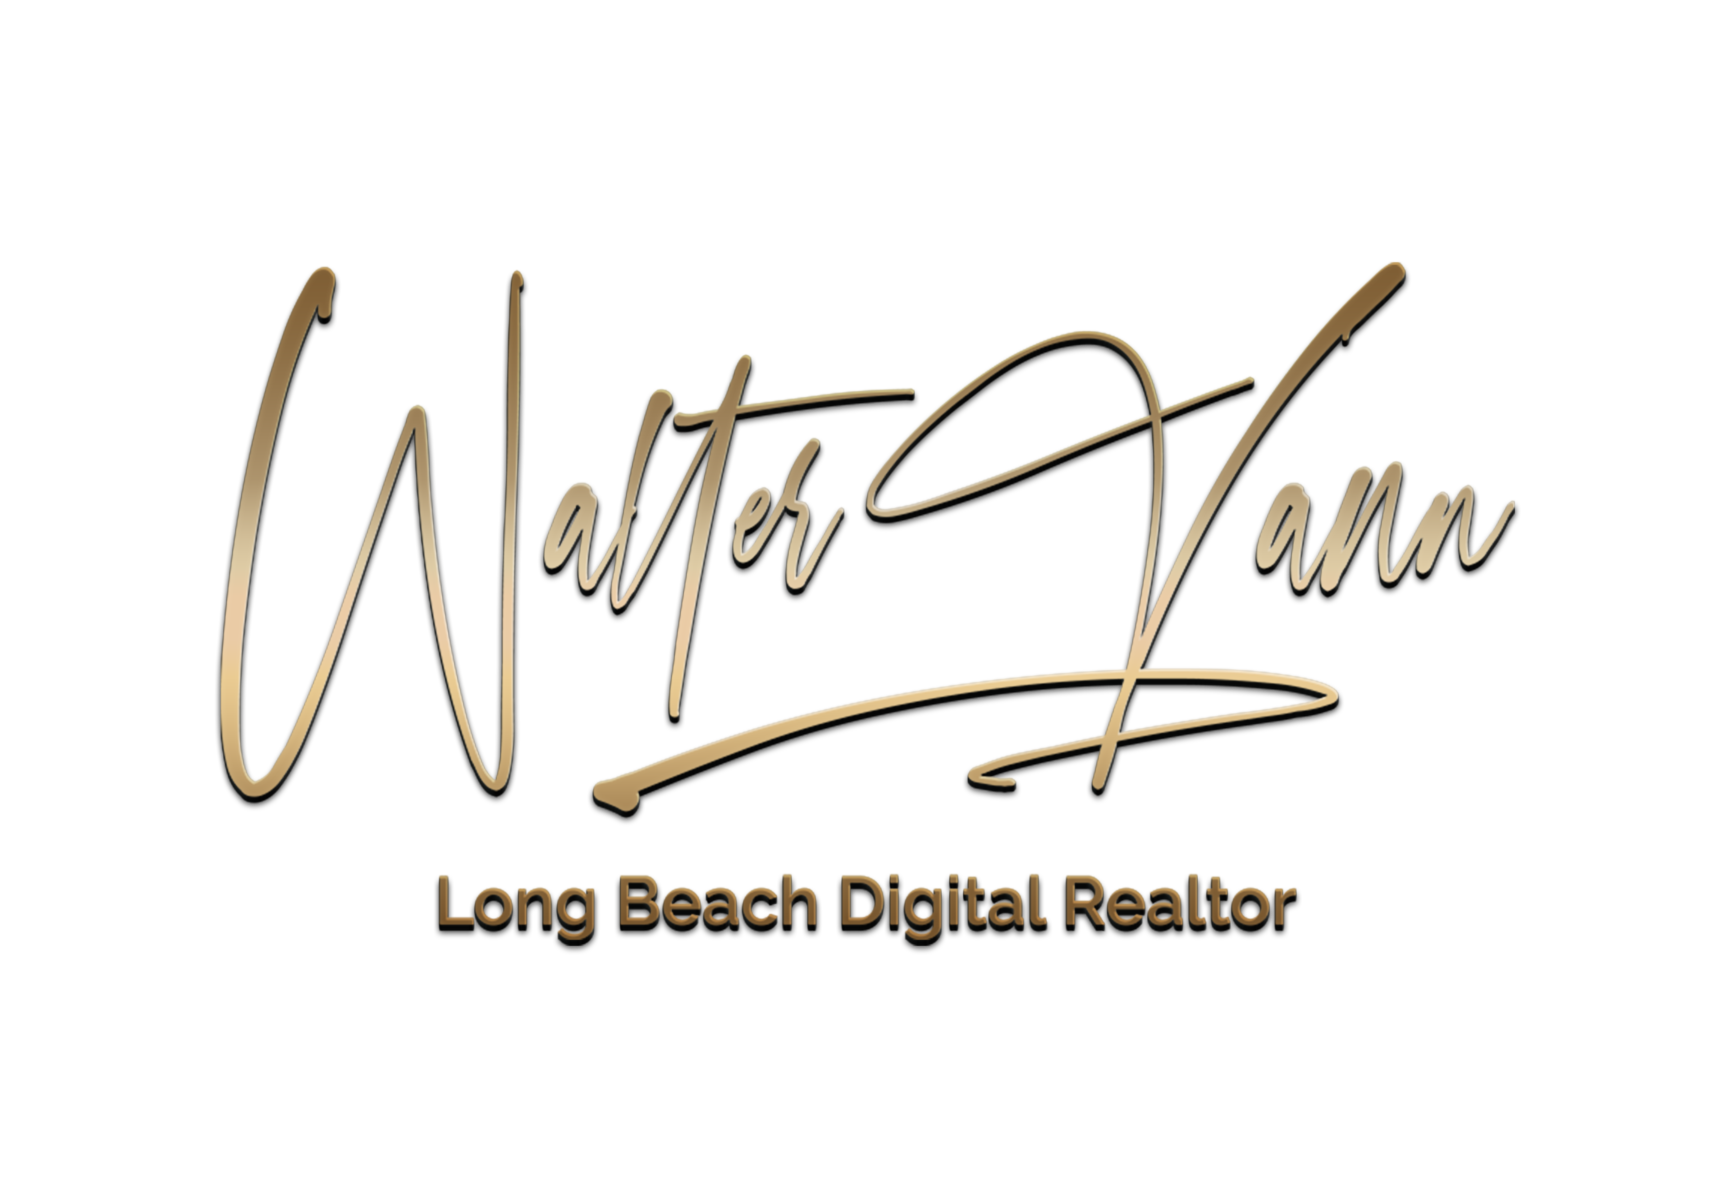 The Long Beach Digital Realtor logo